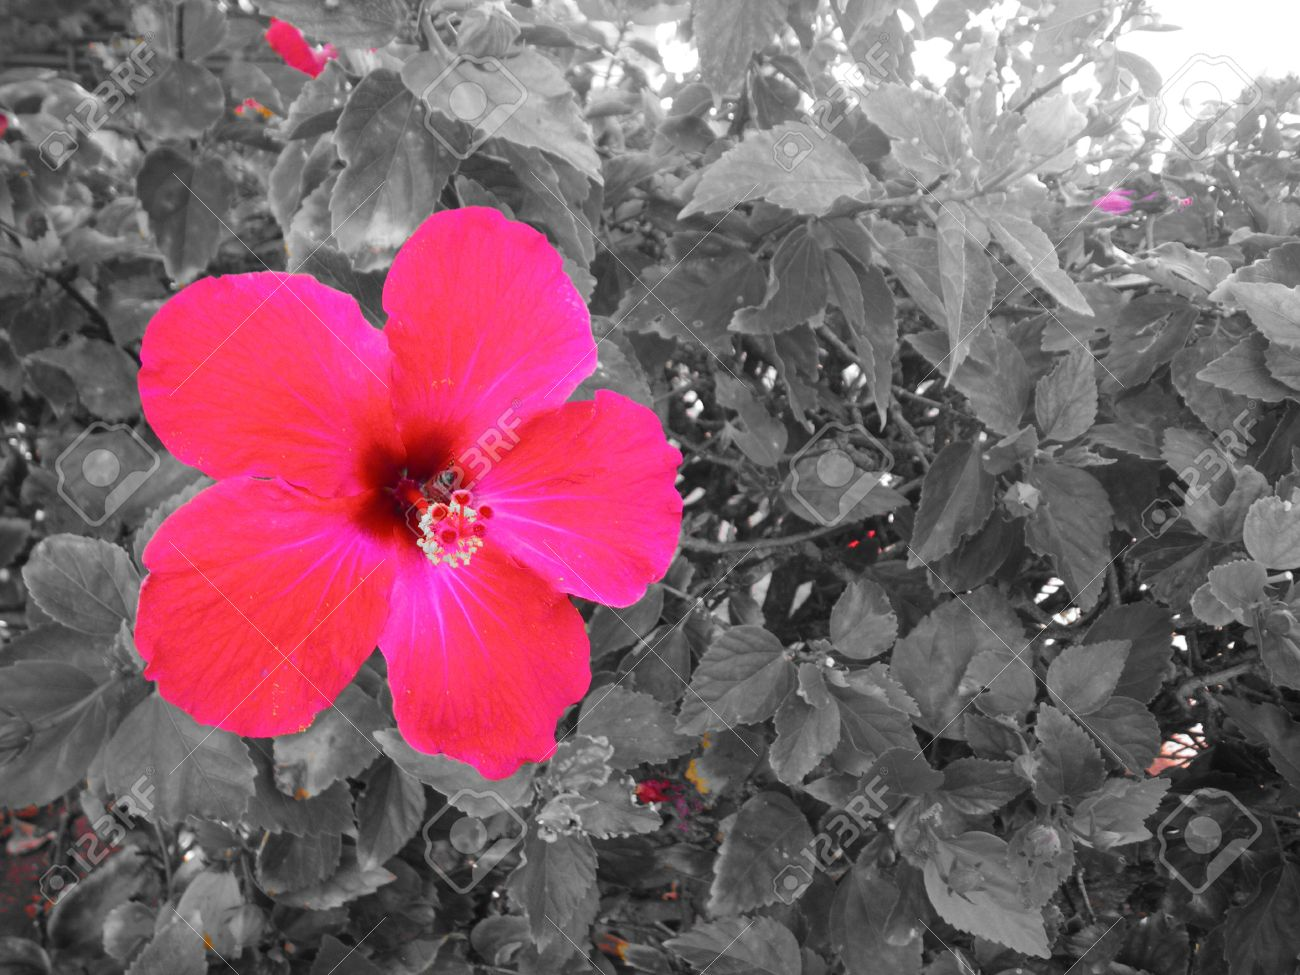 Black And White Photography Flowers With Color Accents Lektonfo